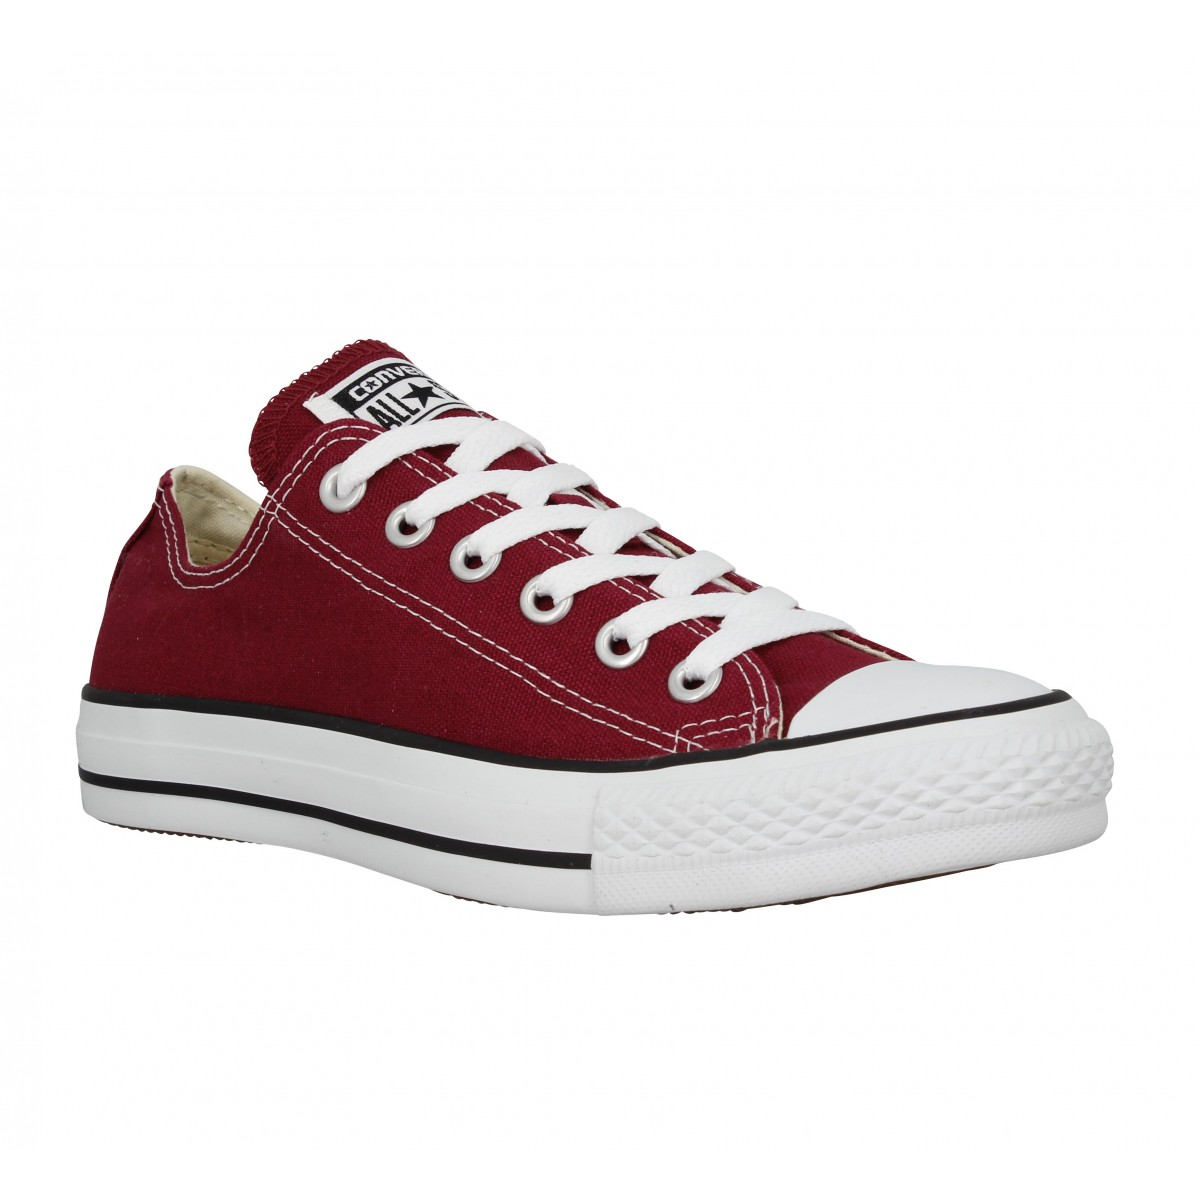 Baskets CONVERSE Chuck Taylor All Star toile Femme Bordeaux